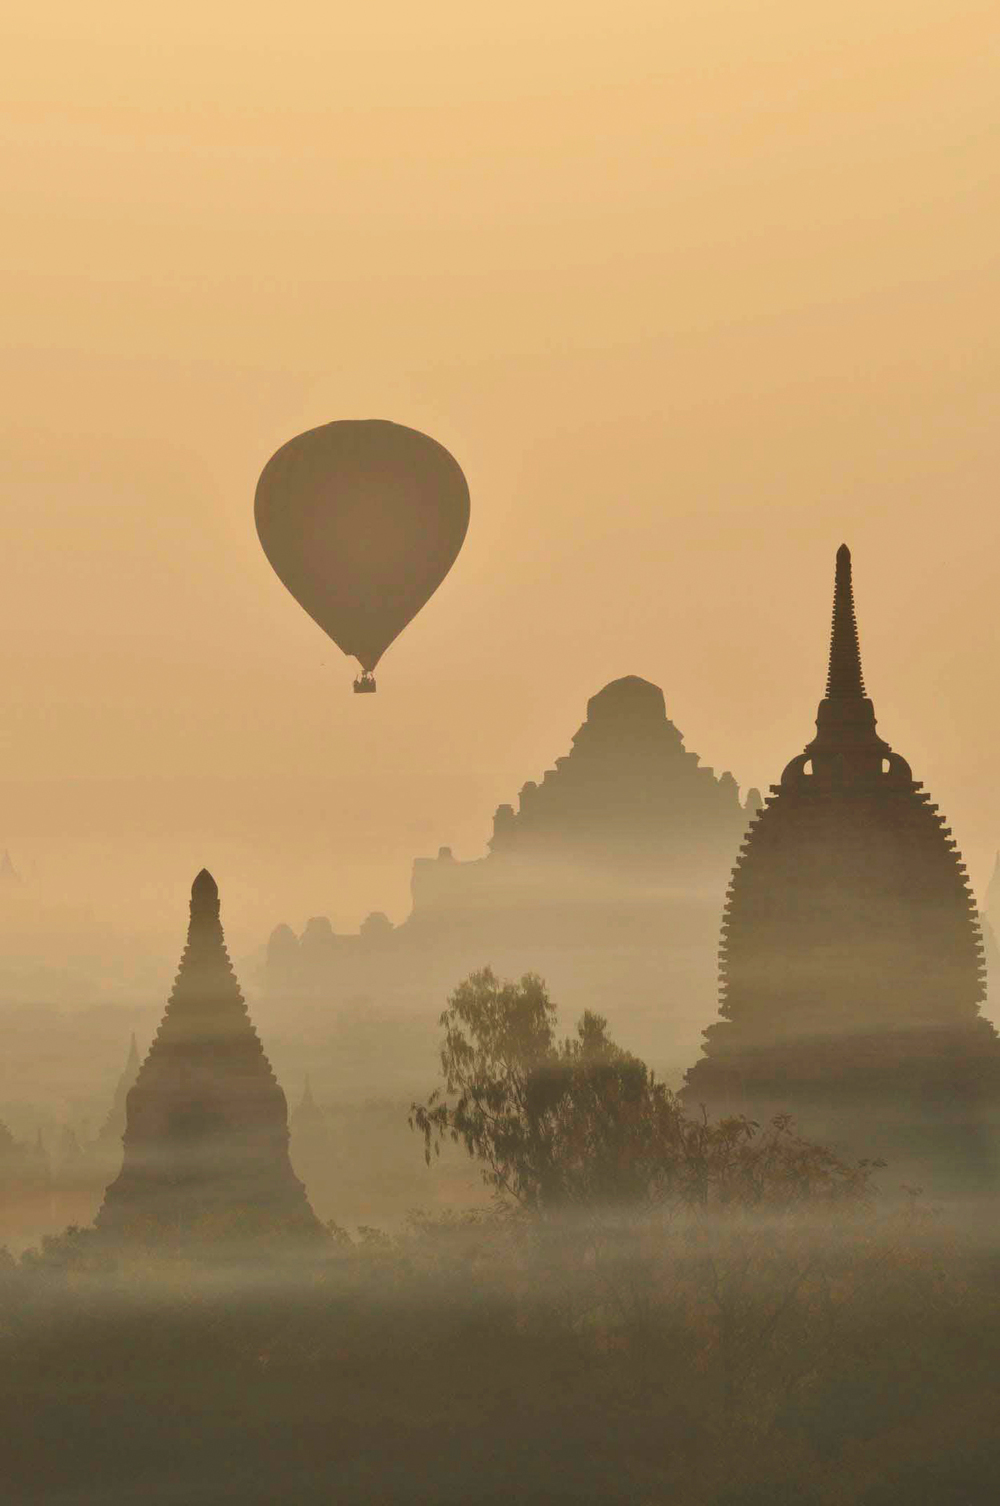 Balloons over Old Bagan, Myanmar